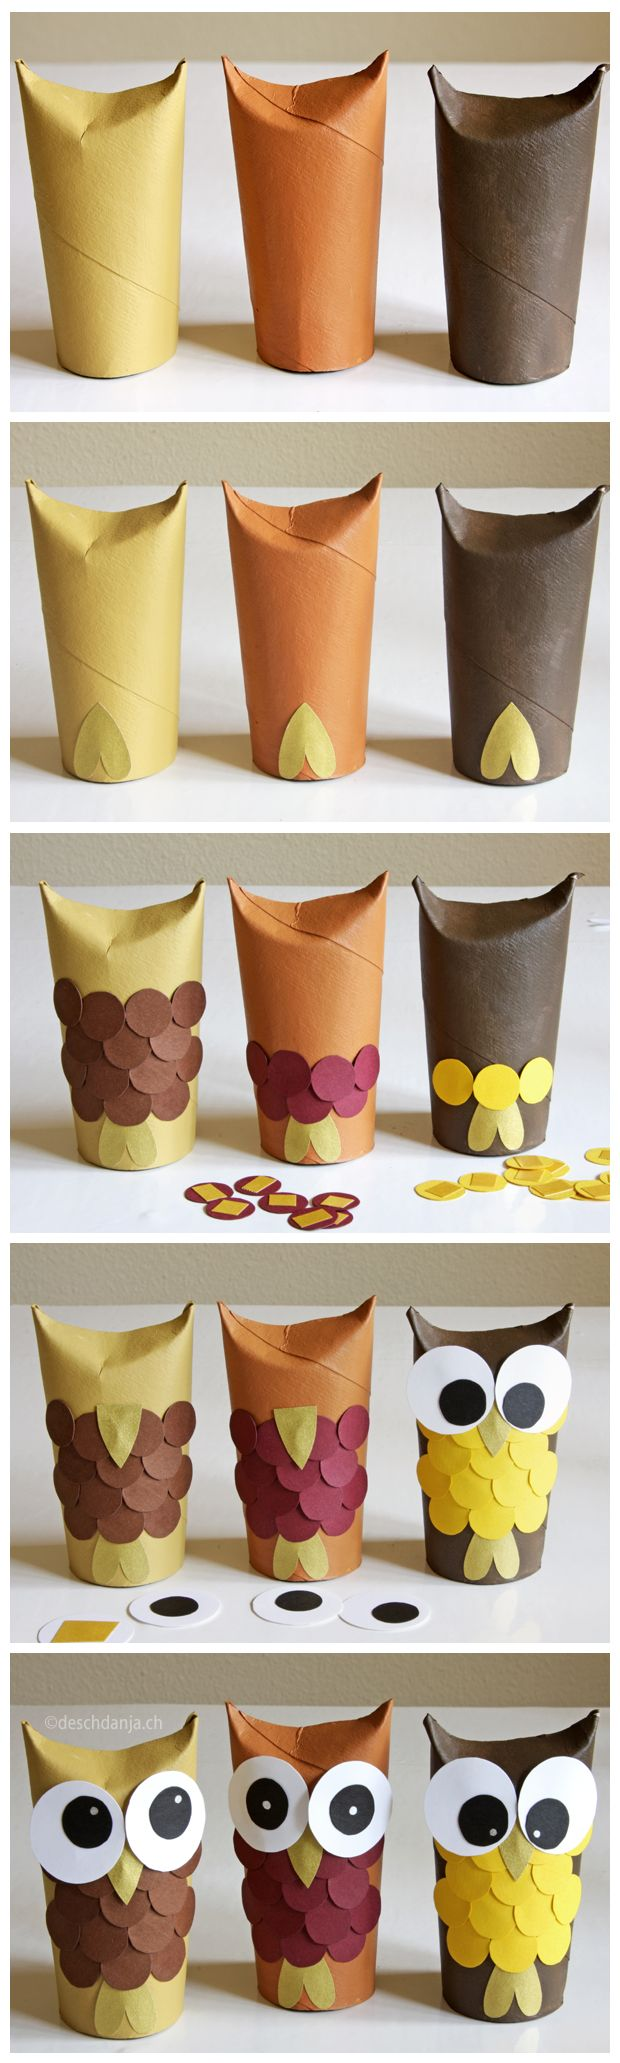 cute paper owls: paper rolls, acrylic color, paper, glue and tape. www.deschdanja.ch More